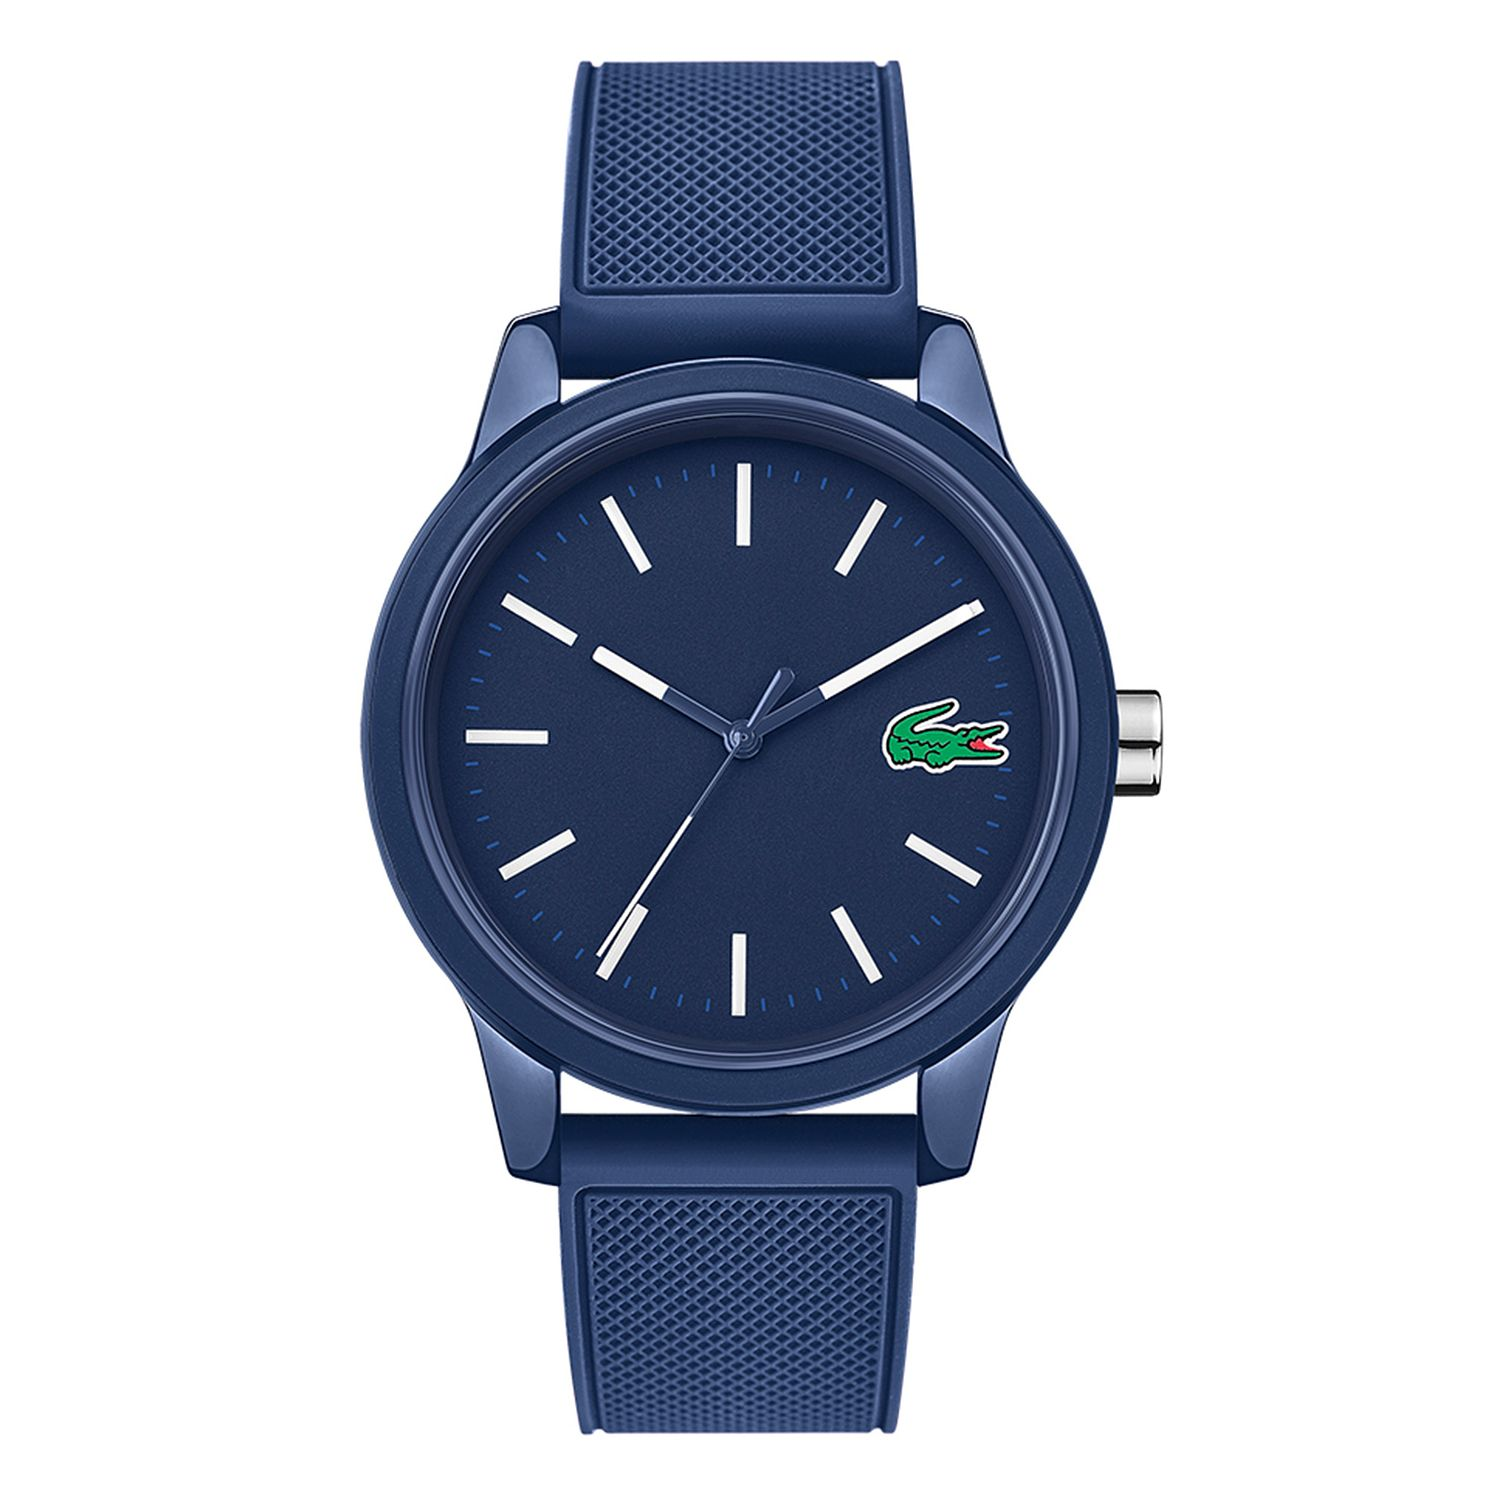 Lacoste Men's Blue Dial Blue Silicone Strap Watch - Product number 9691561